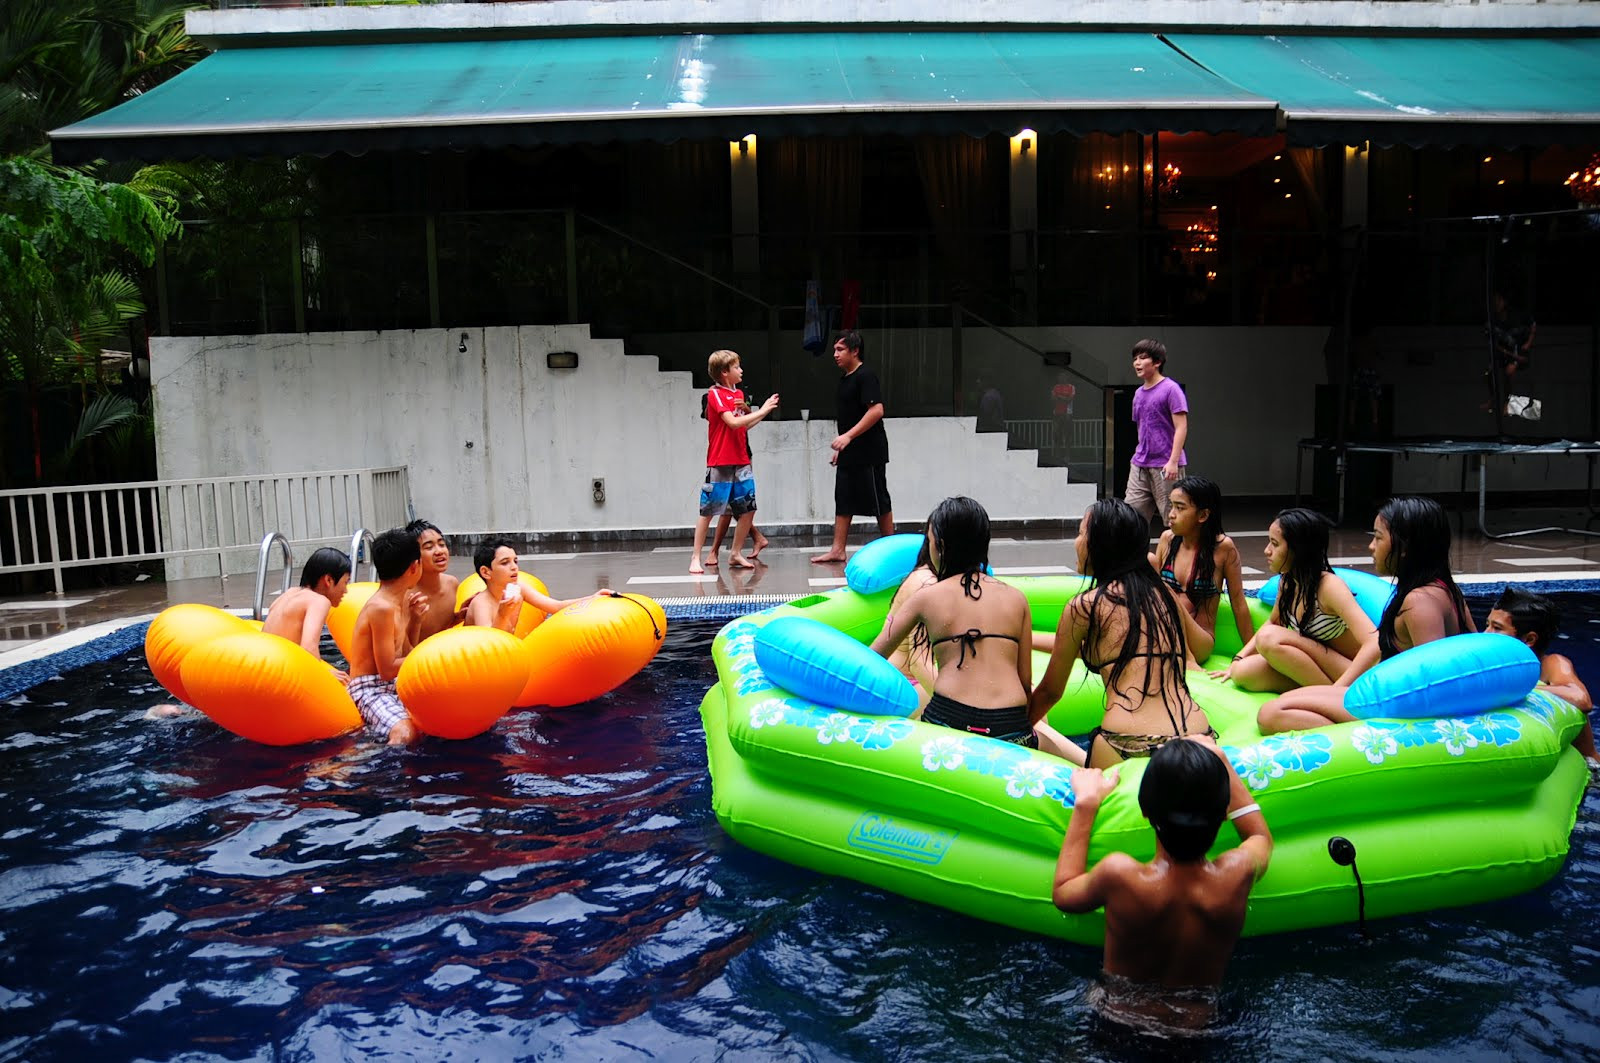 Teen Pool Party Ideas  Event DirecTus Pool Party FUN for KIDS TEENS & ADULTS